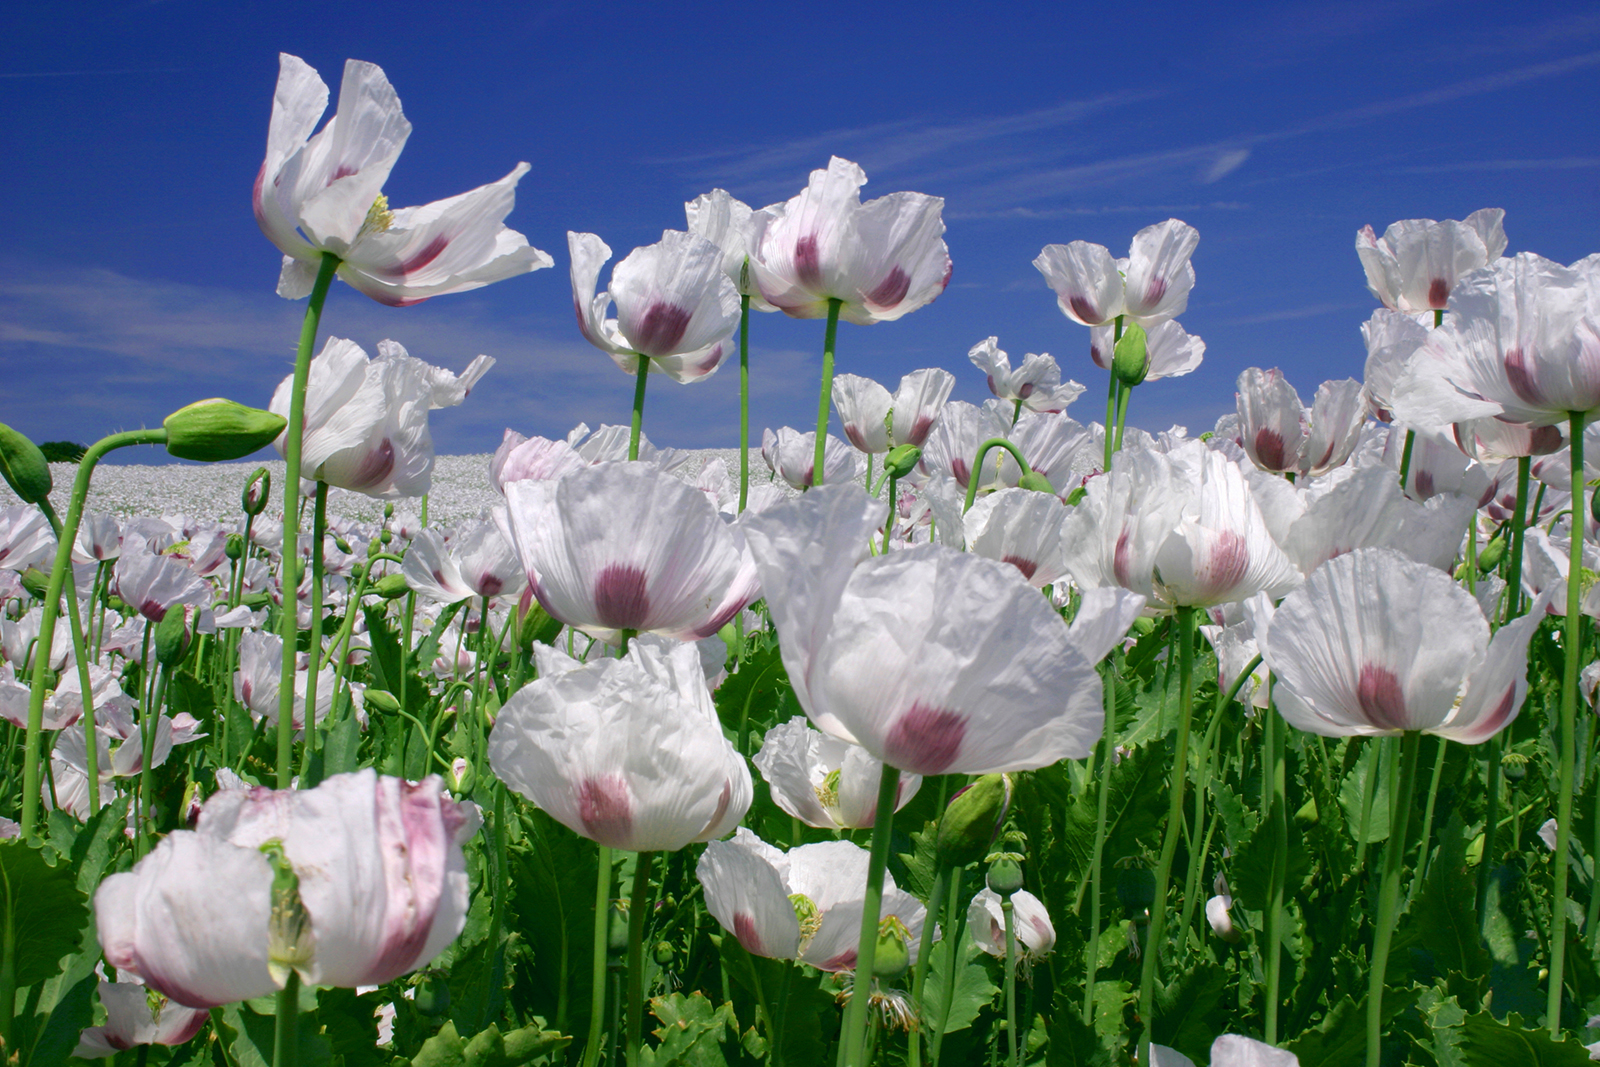 A close view of poppies in a field